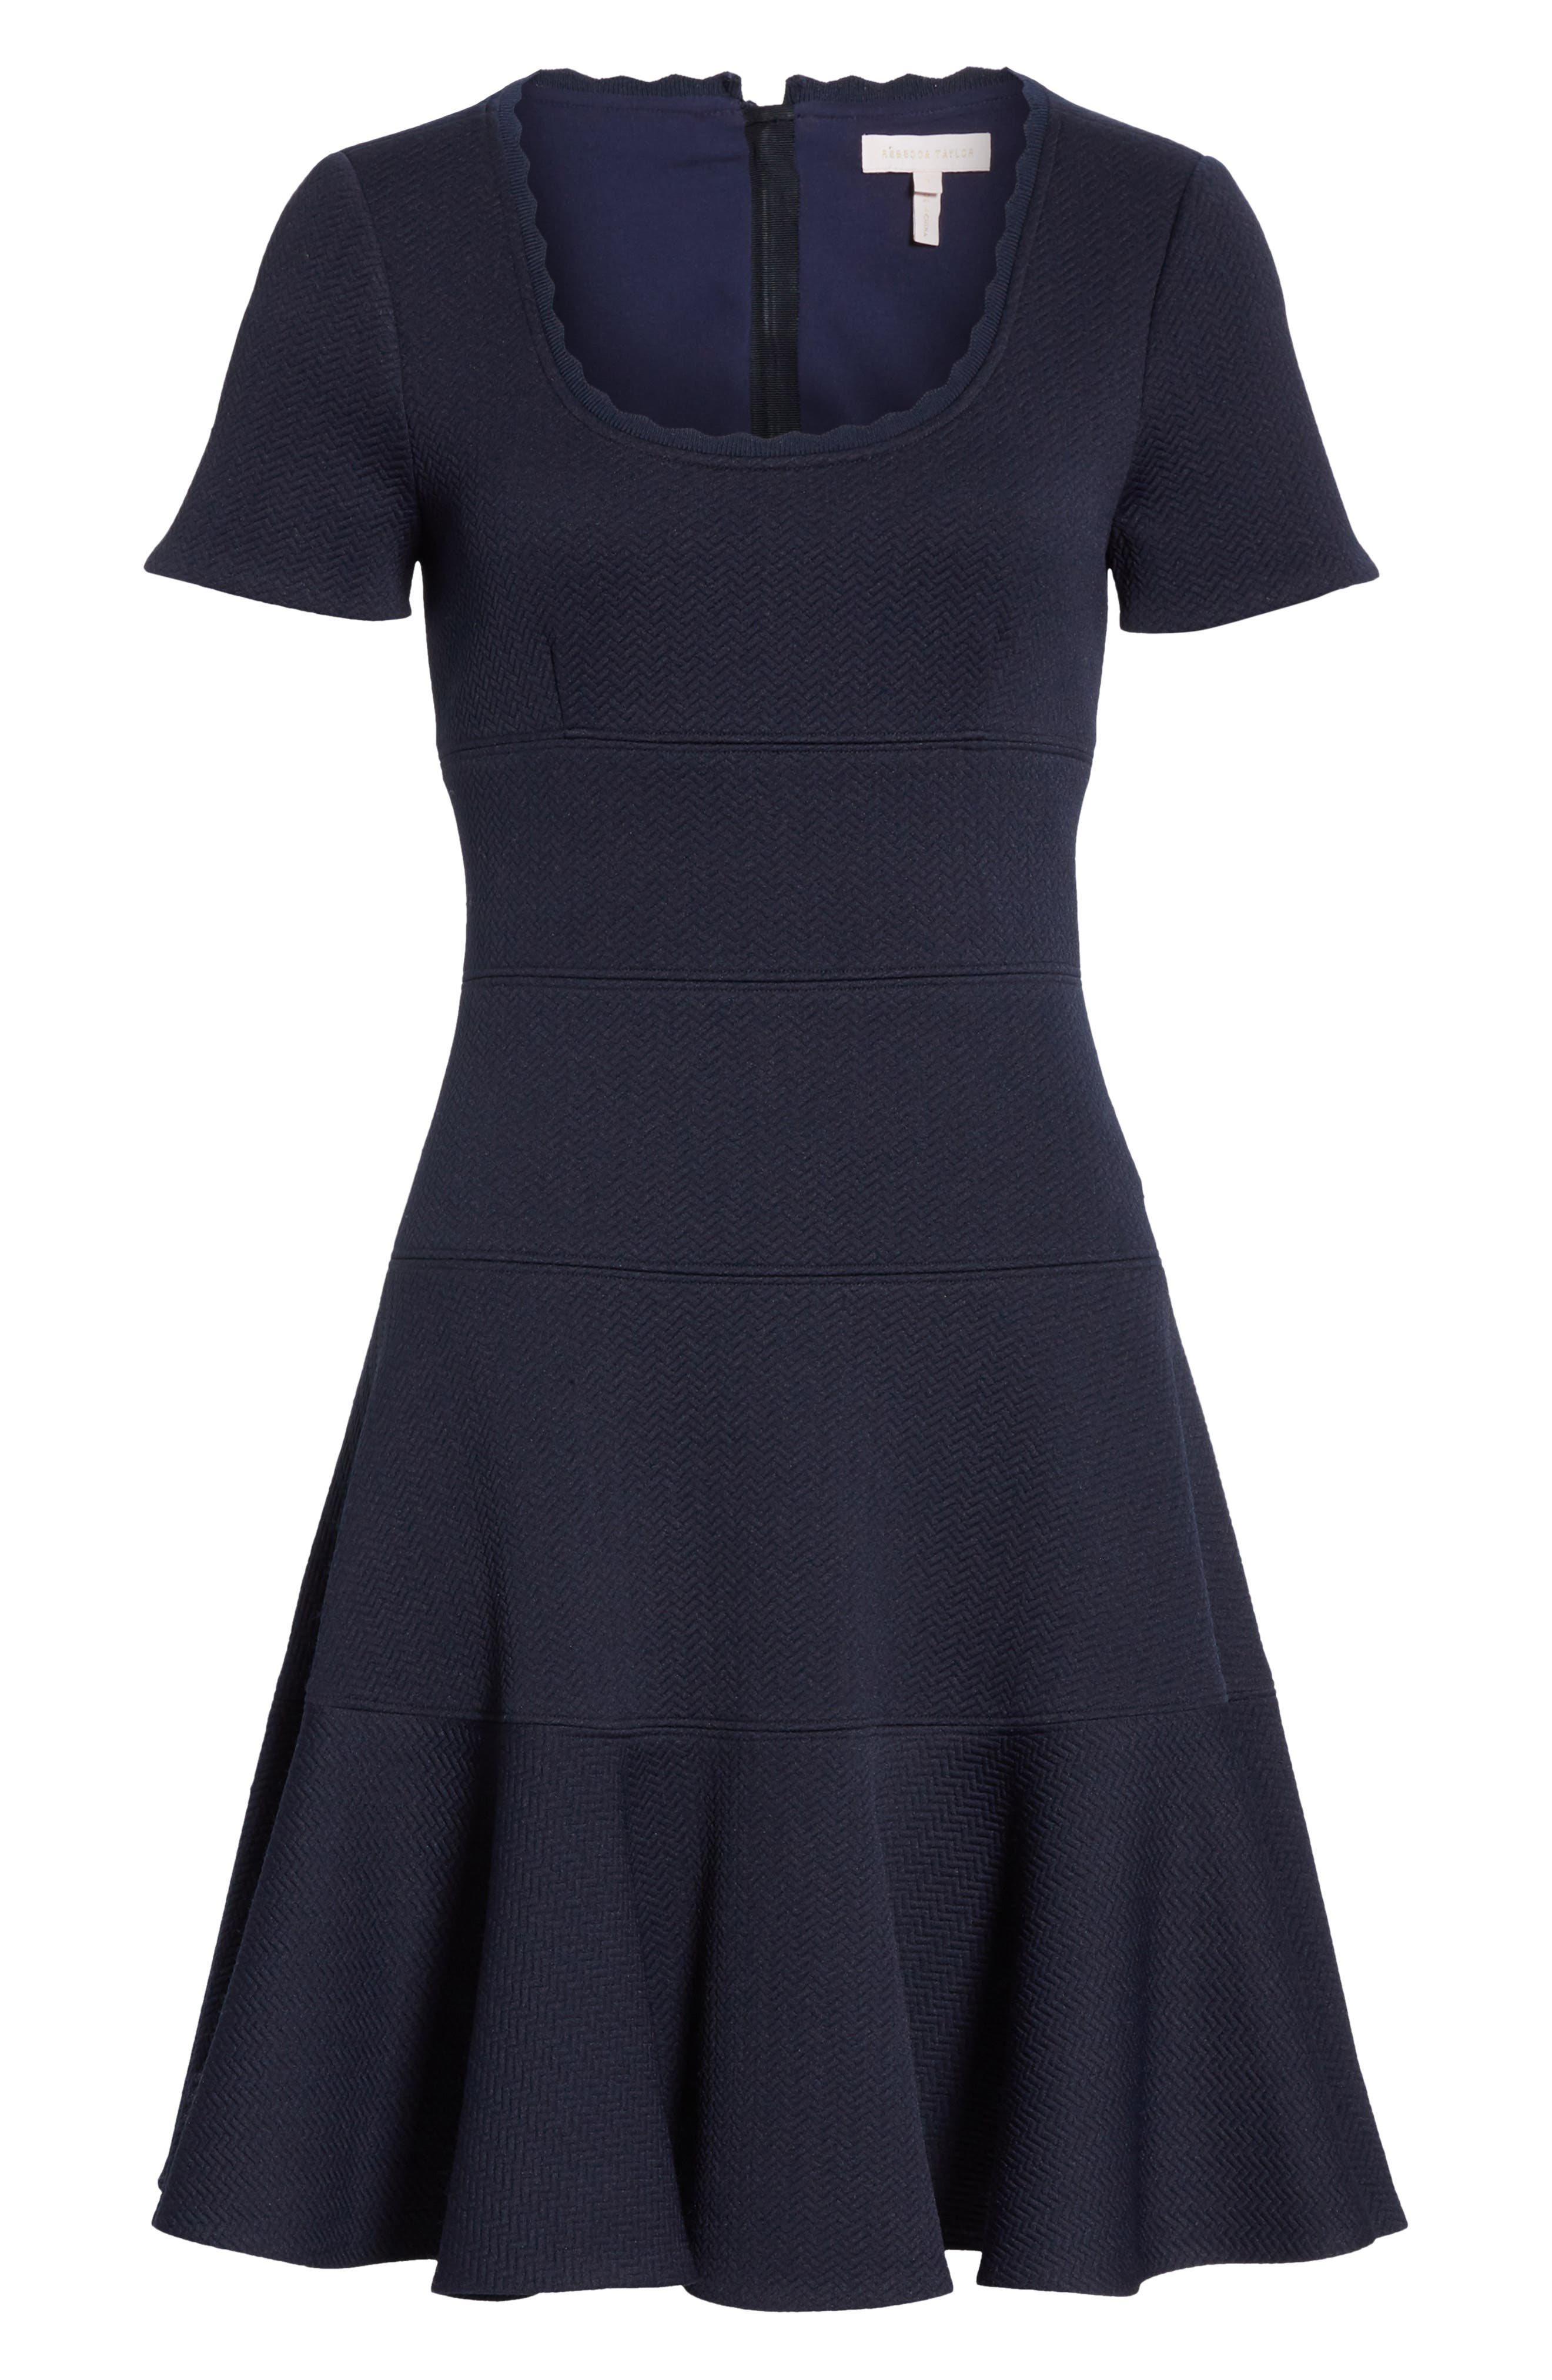 REBECCA TAYLOR, Textured Scallop Detail Fit & Flare Dress, Alternate thumbnail 7, color, NAVY